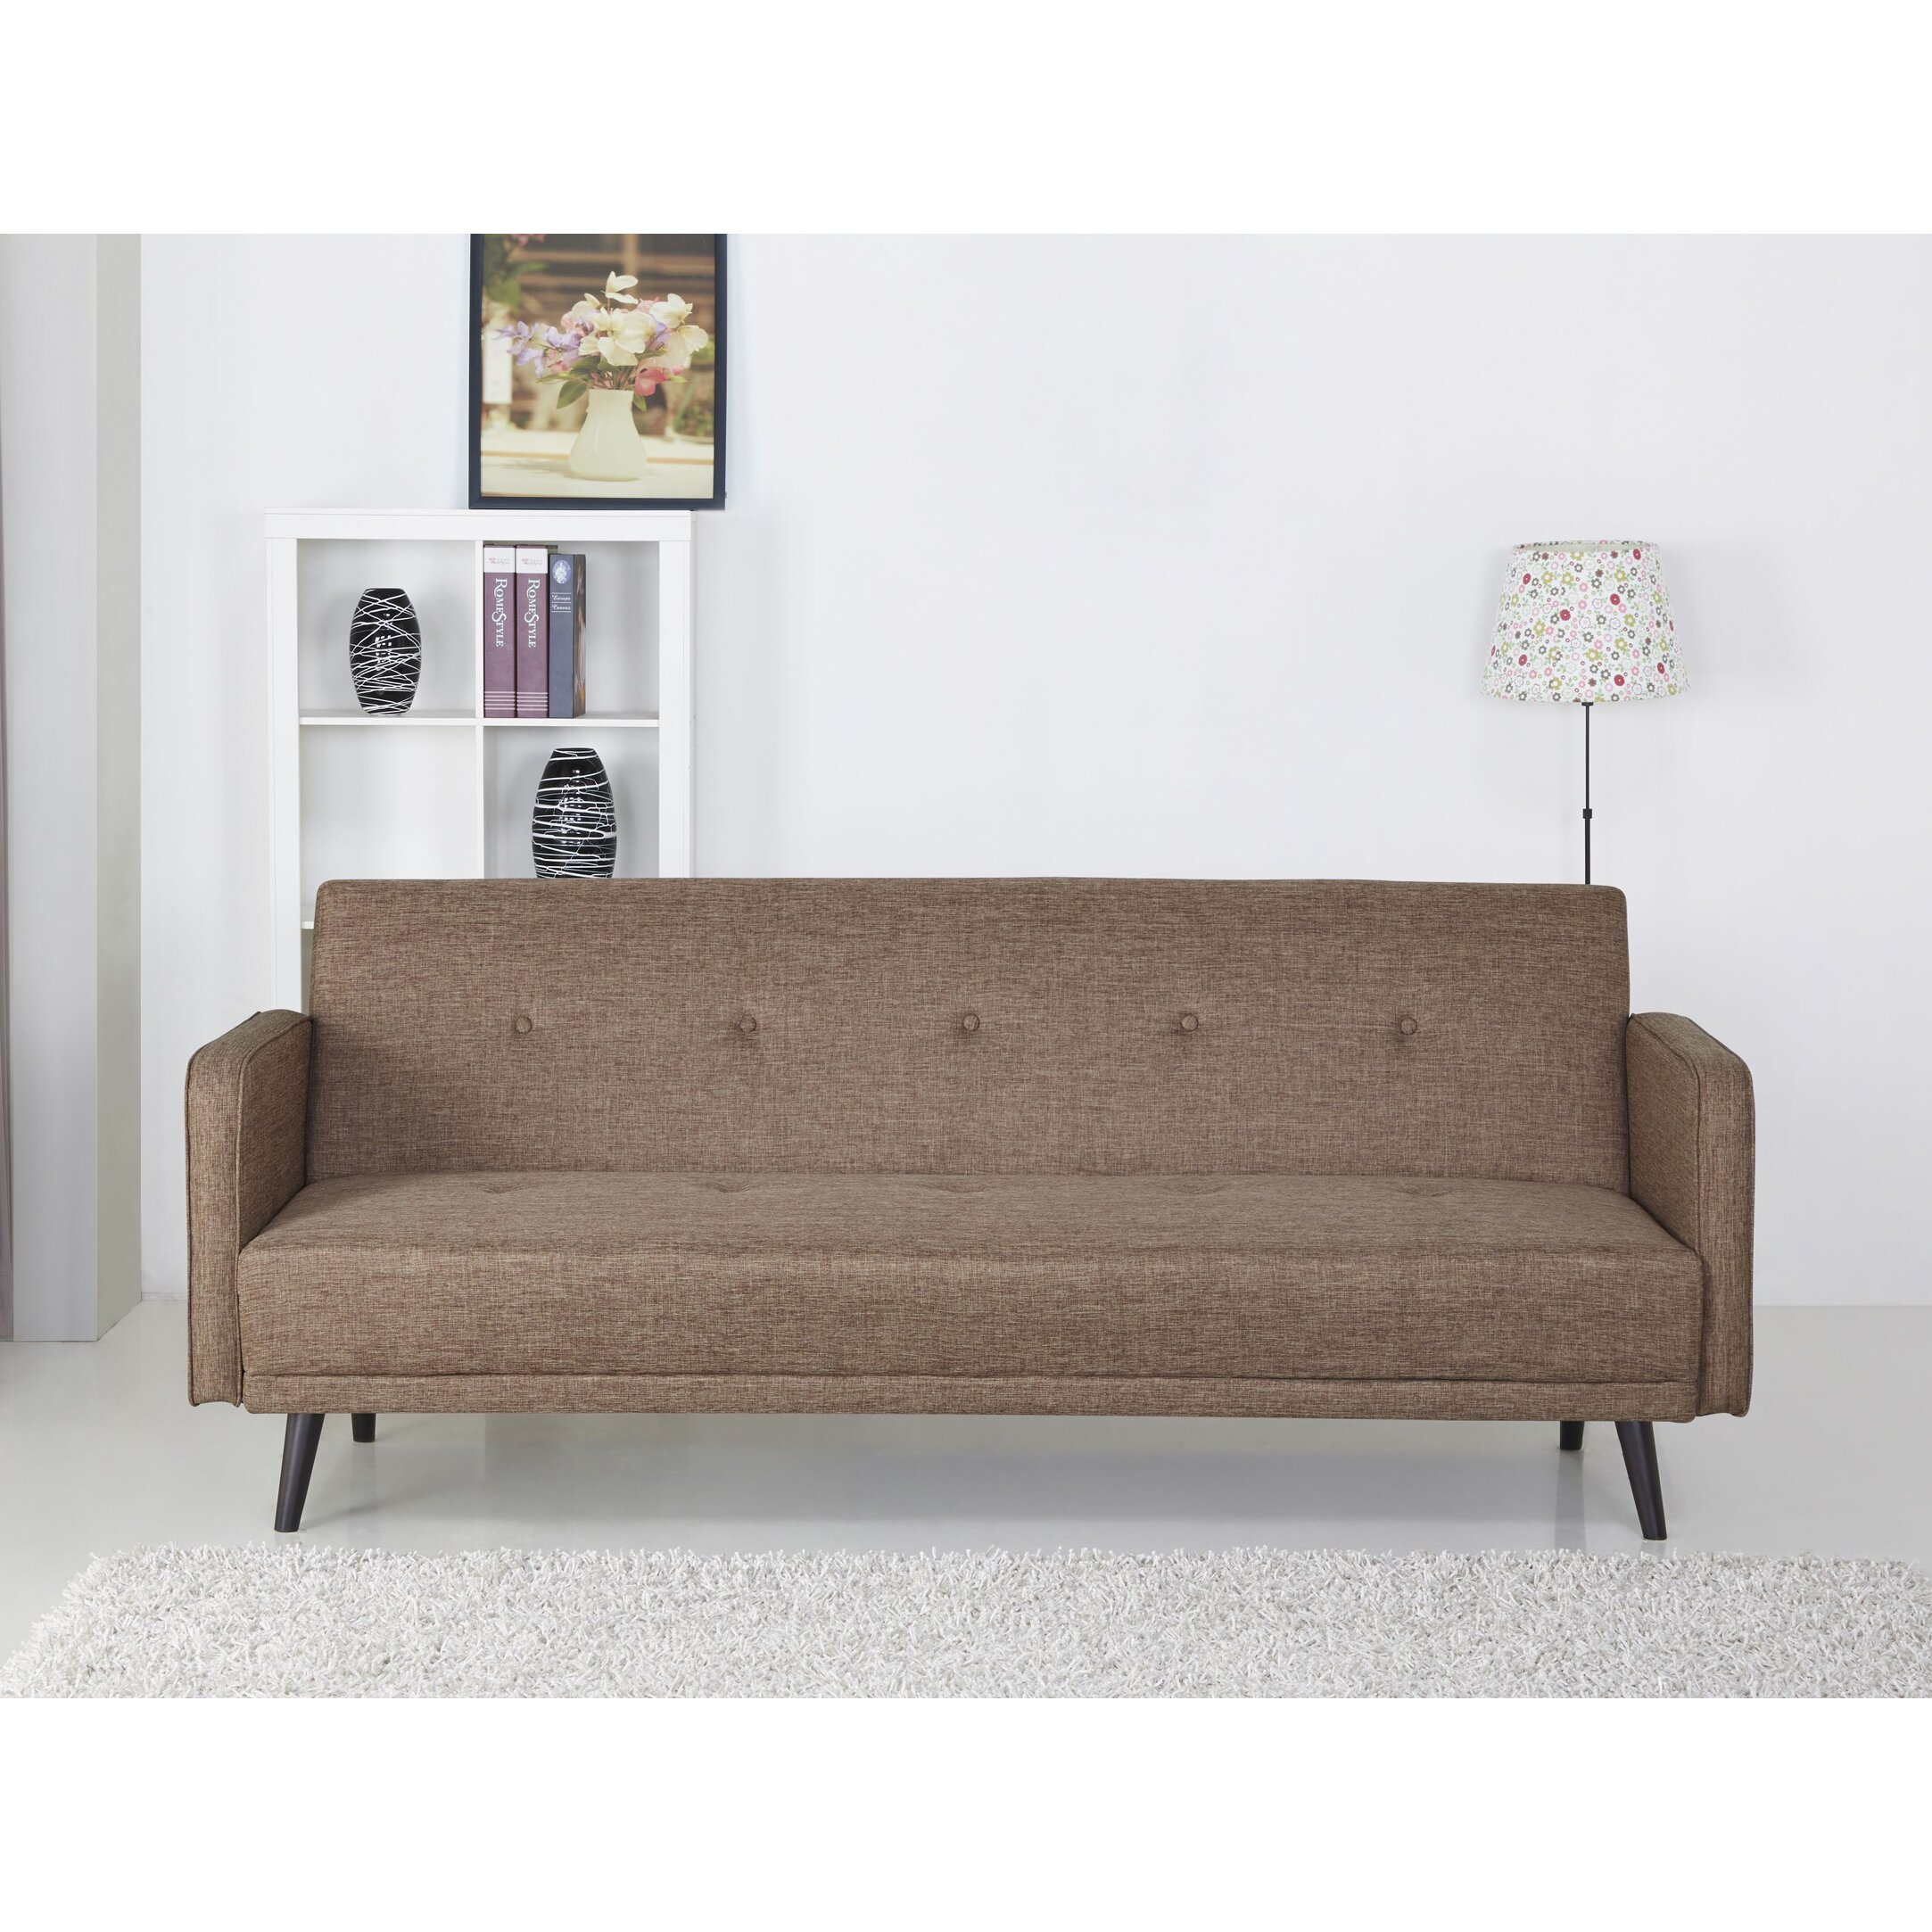 Langley street zelmo sleeper sofa reviews wayfair for Outdoor furniture langley